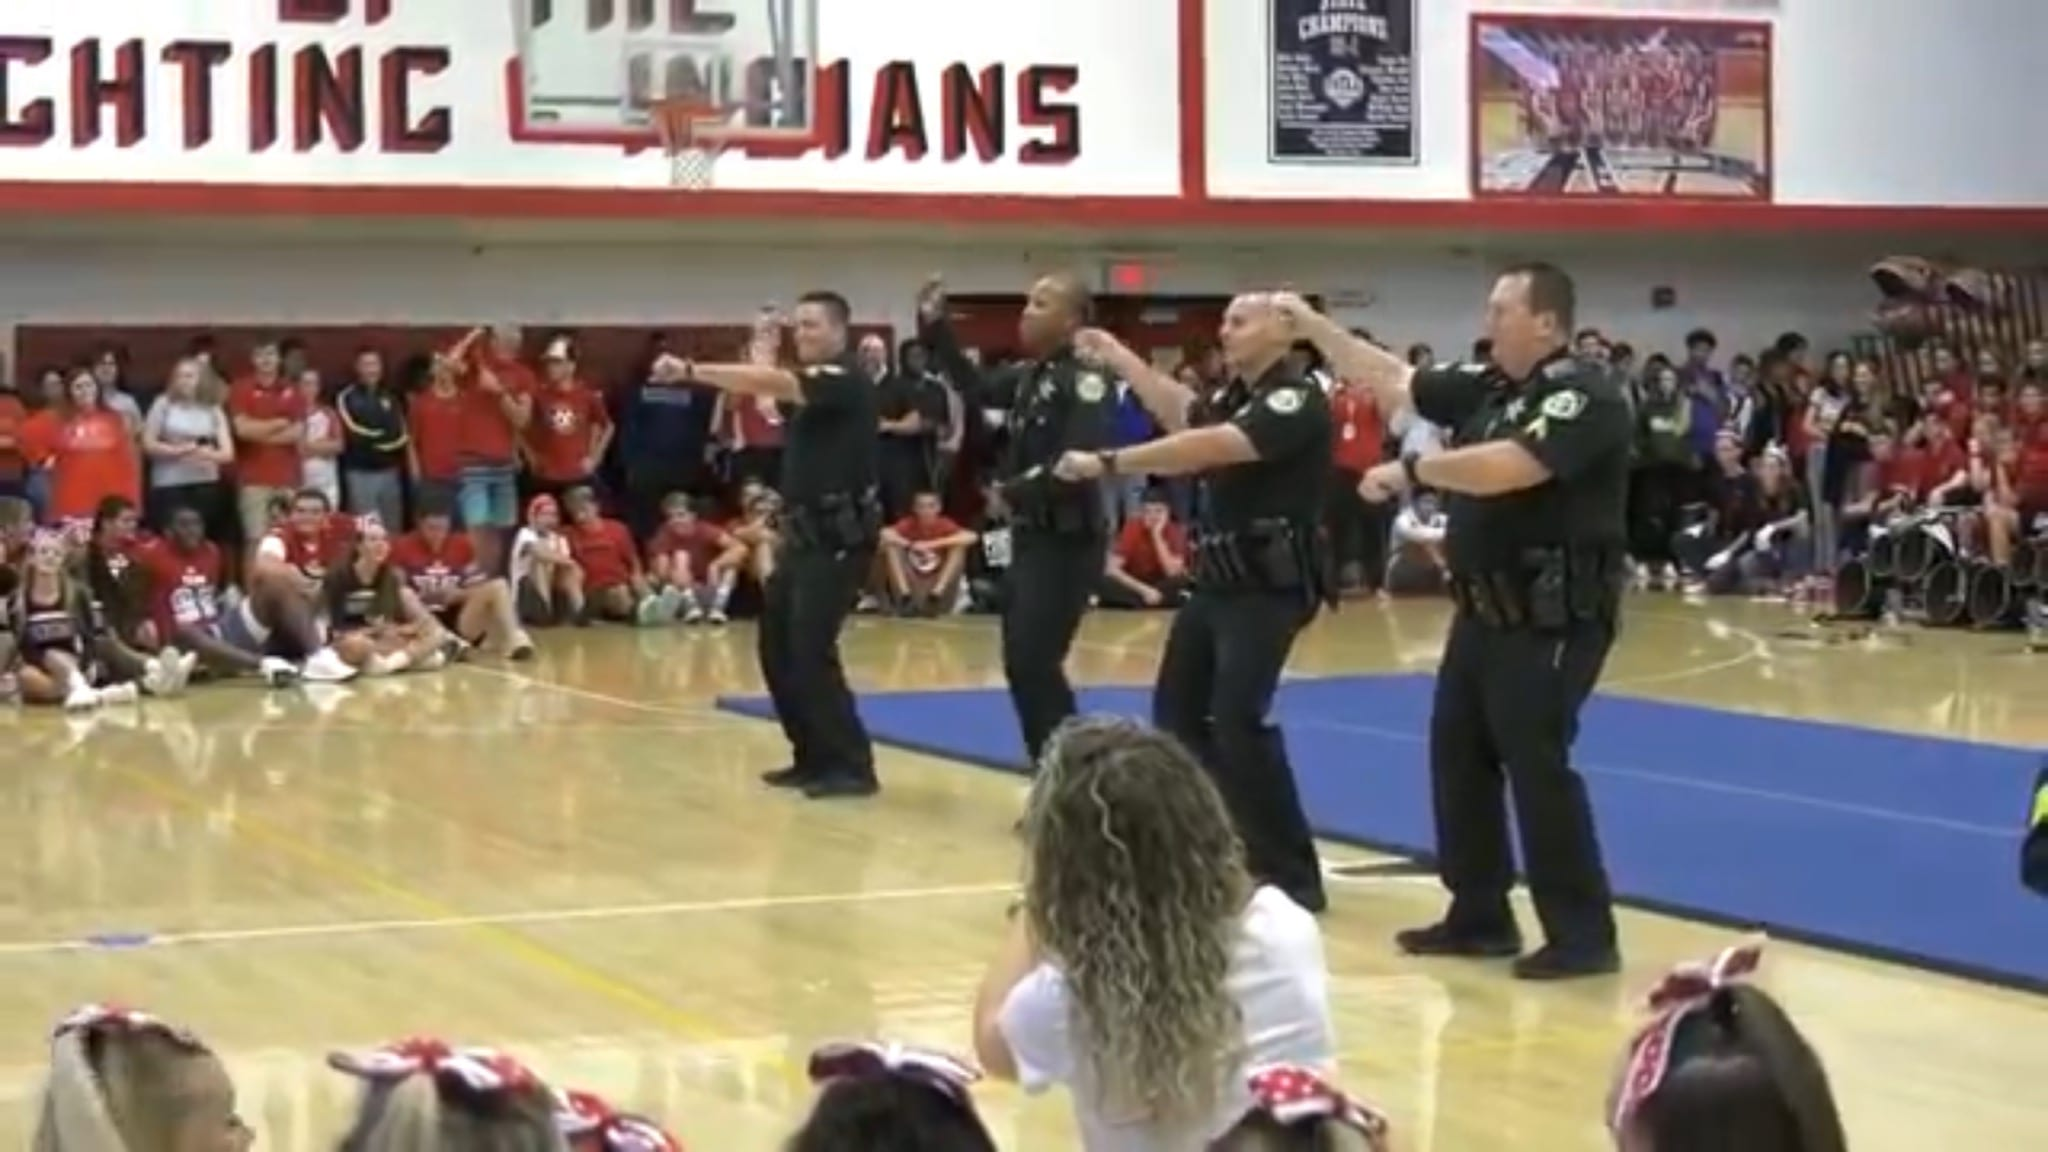 Police officers dance in front of students at high school pep rally. (Courtesy of Major Milo Thornton)